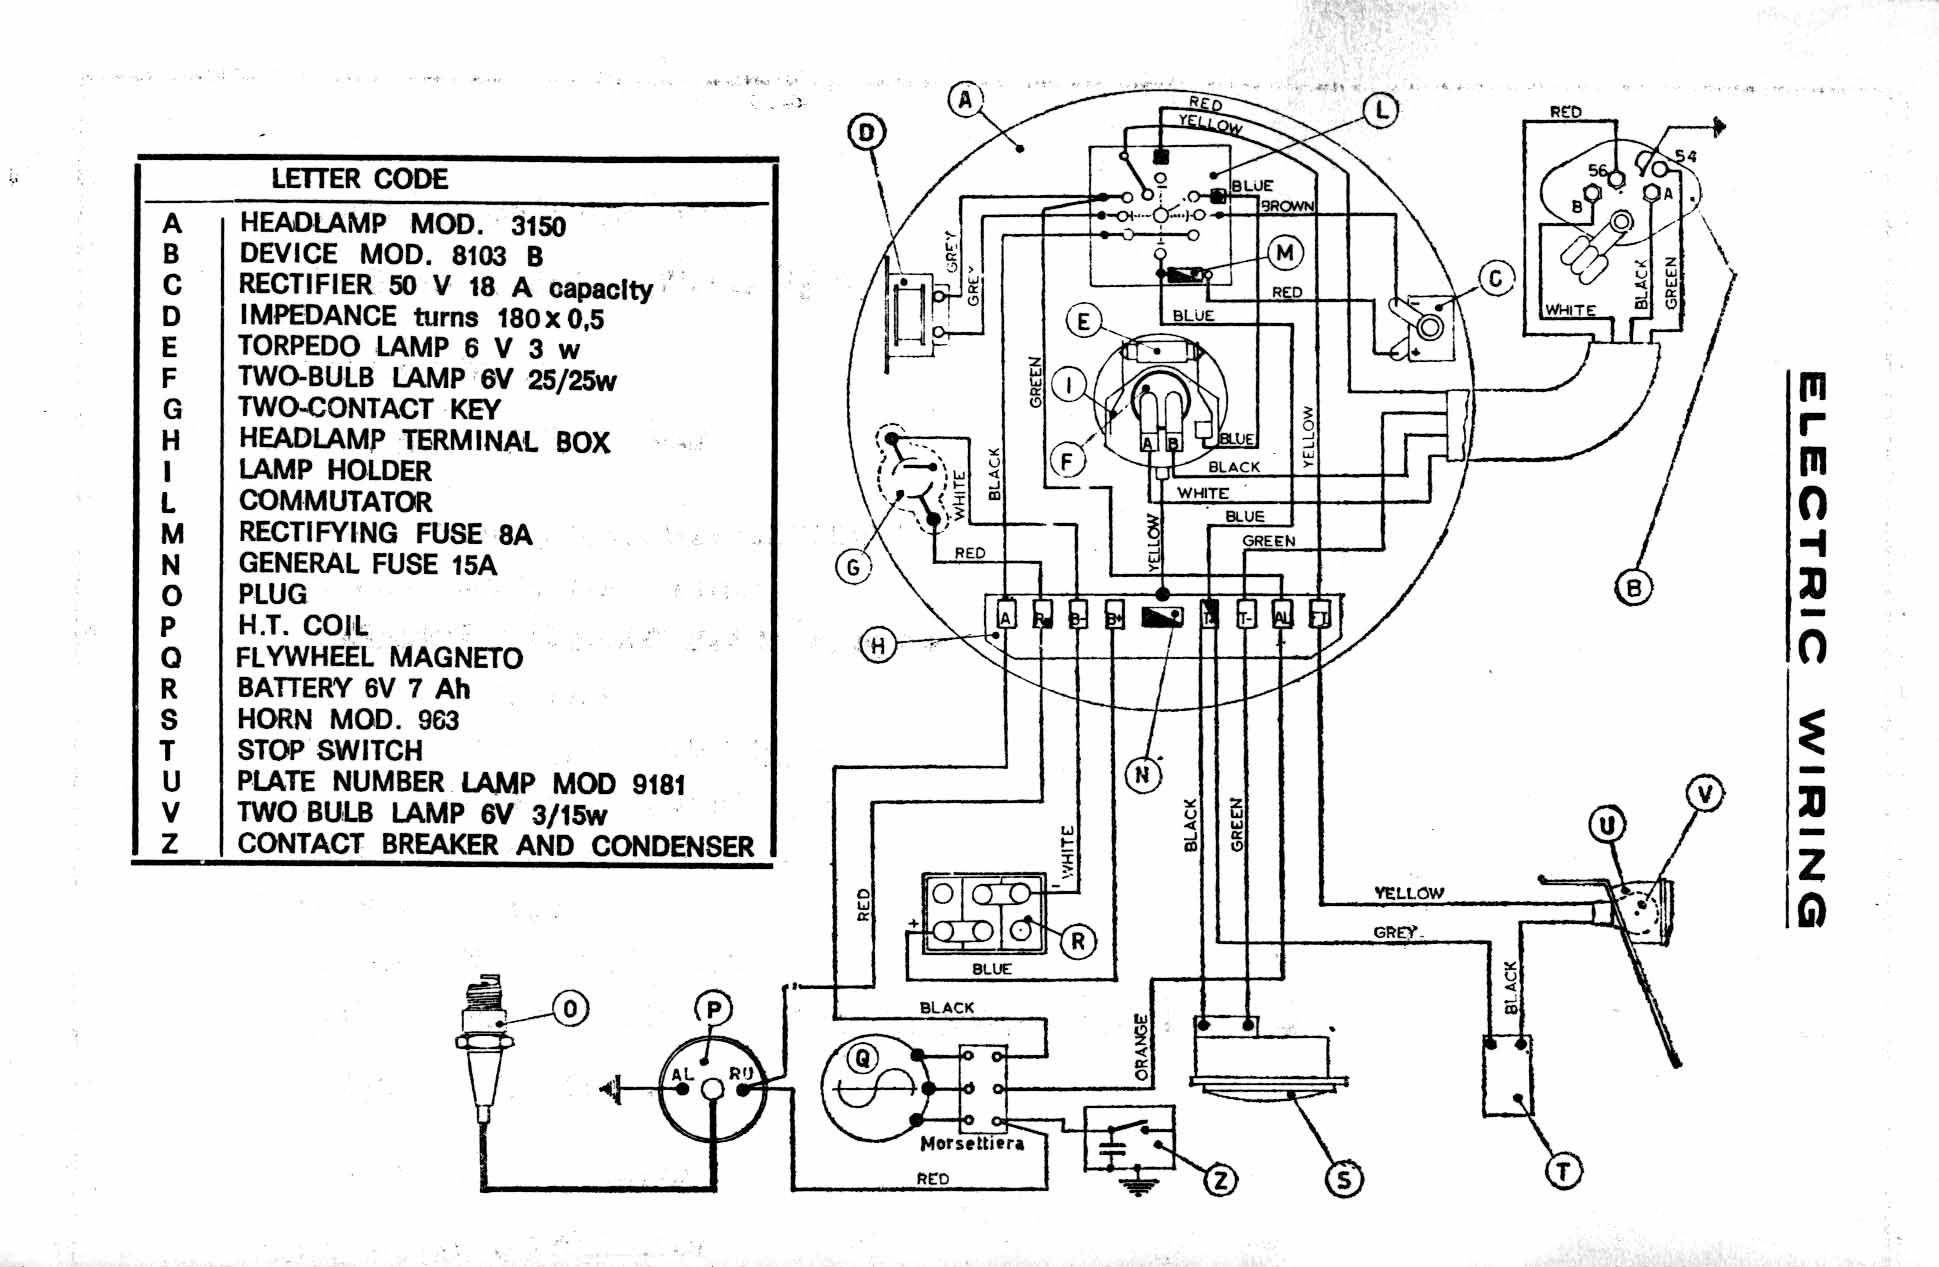 [DIAGRAM] Cf Moto 500 Wiring Diagram FULL Version HD